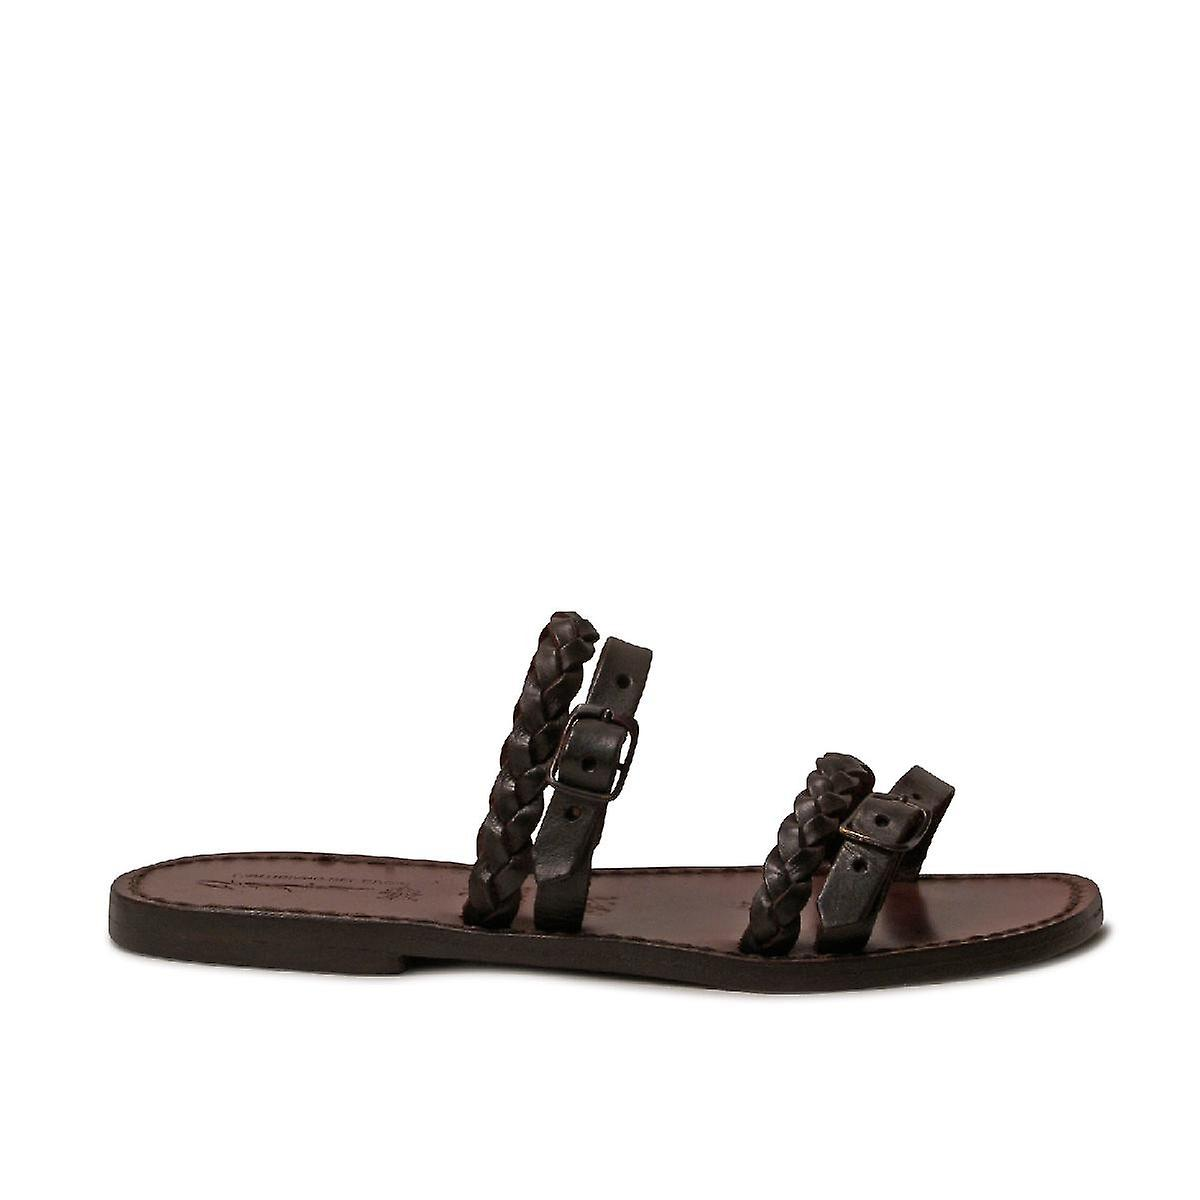 Gianluca - L-apos;artigiano Del Cuoio 1275sandbrown Women-apos;s Brown Leather Sandals onGU8b